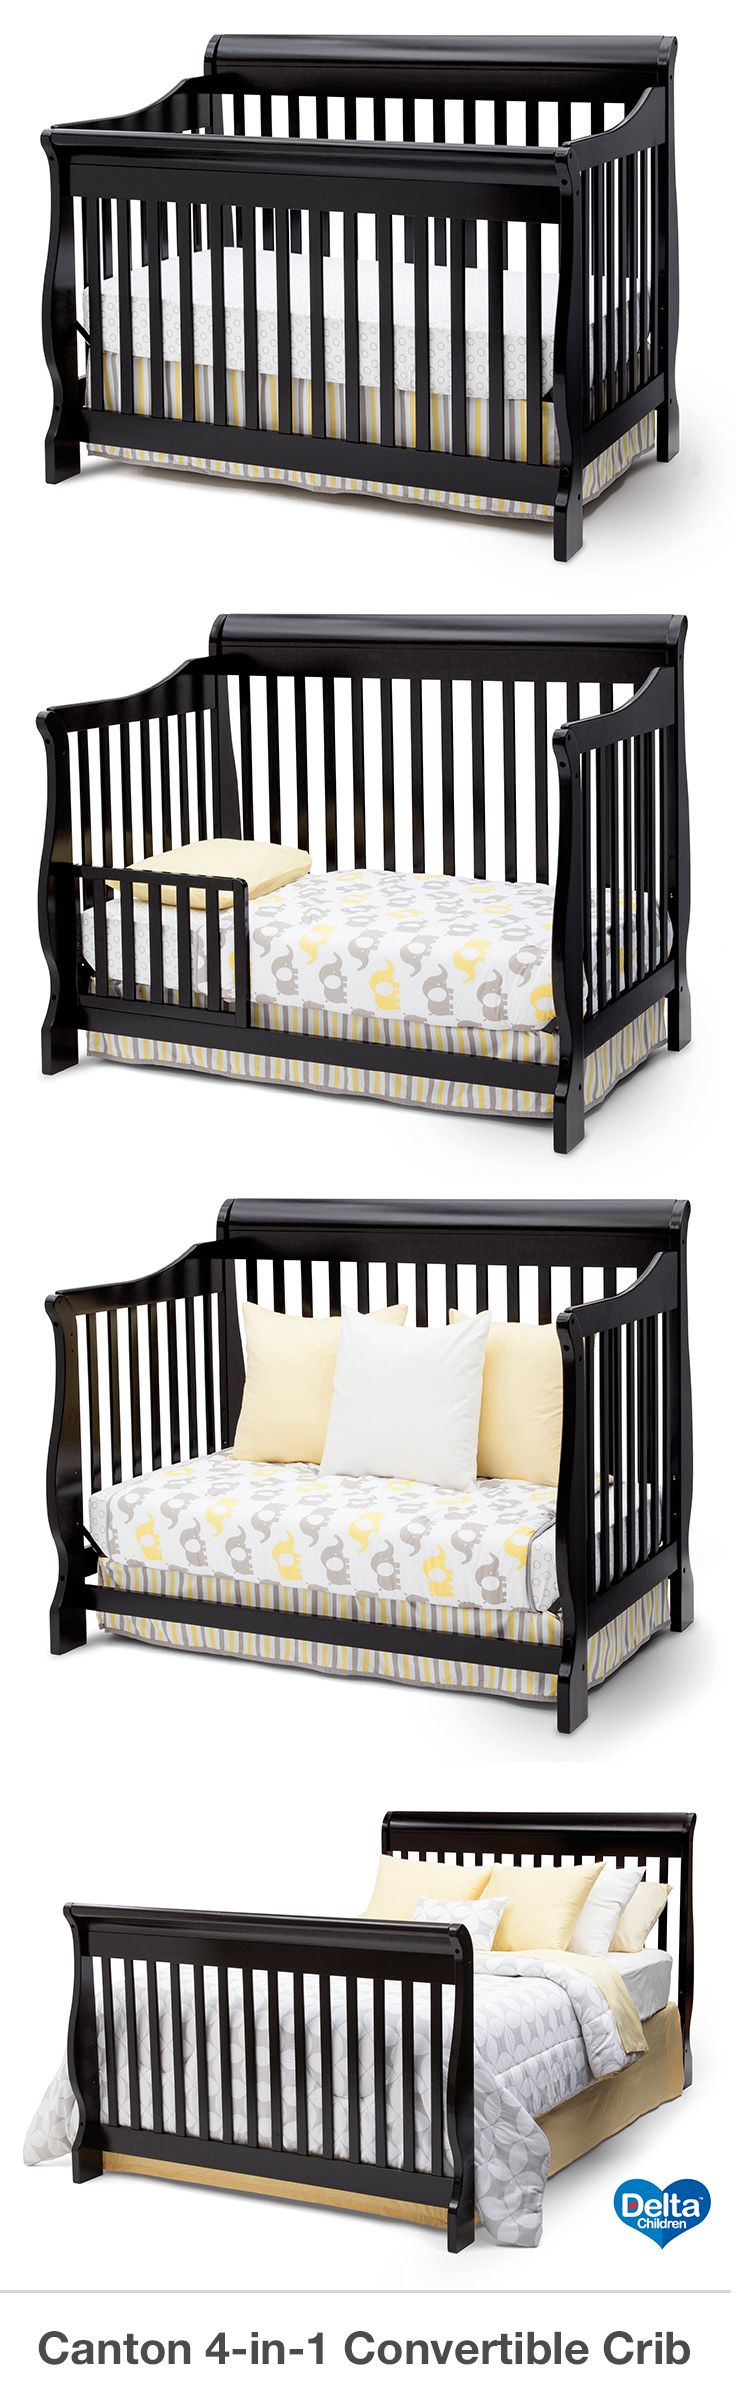 The Delta Canton 4 In 1 Convertible Crib Is A Perfect Addition To Your Full Size BedsFull Toddler